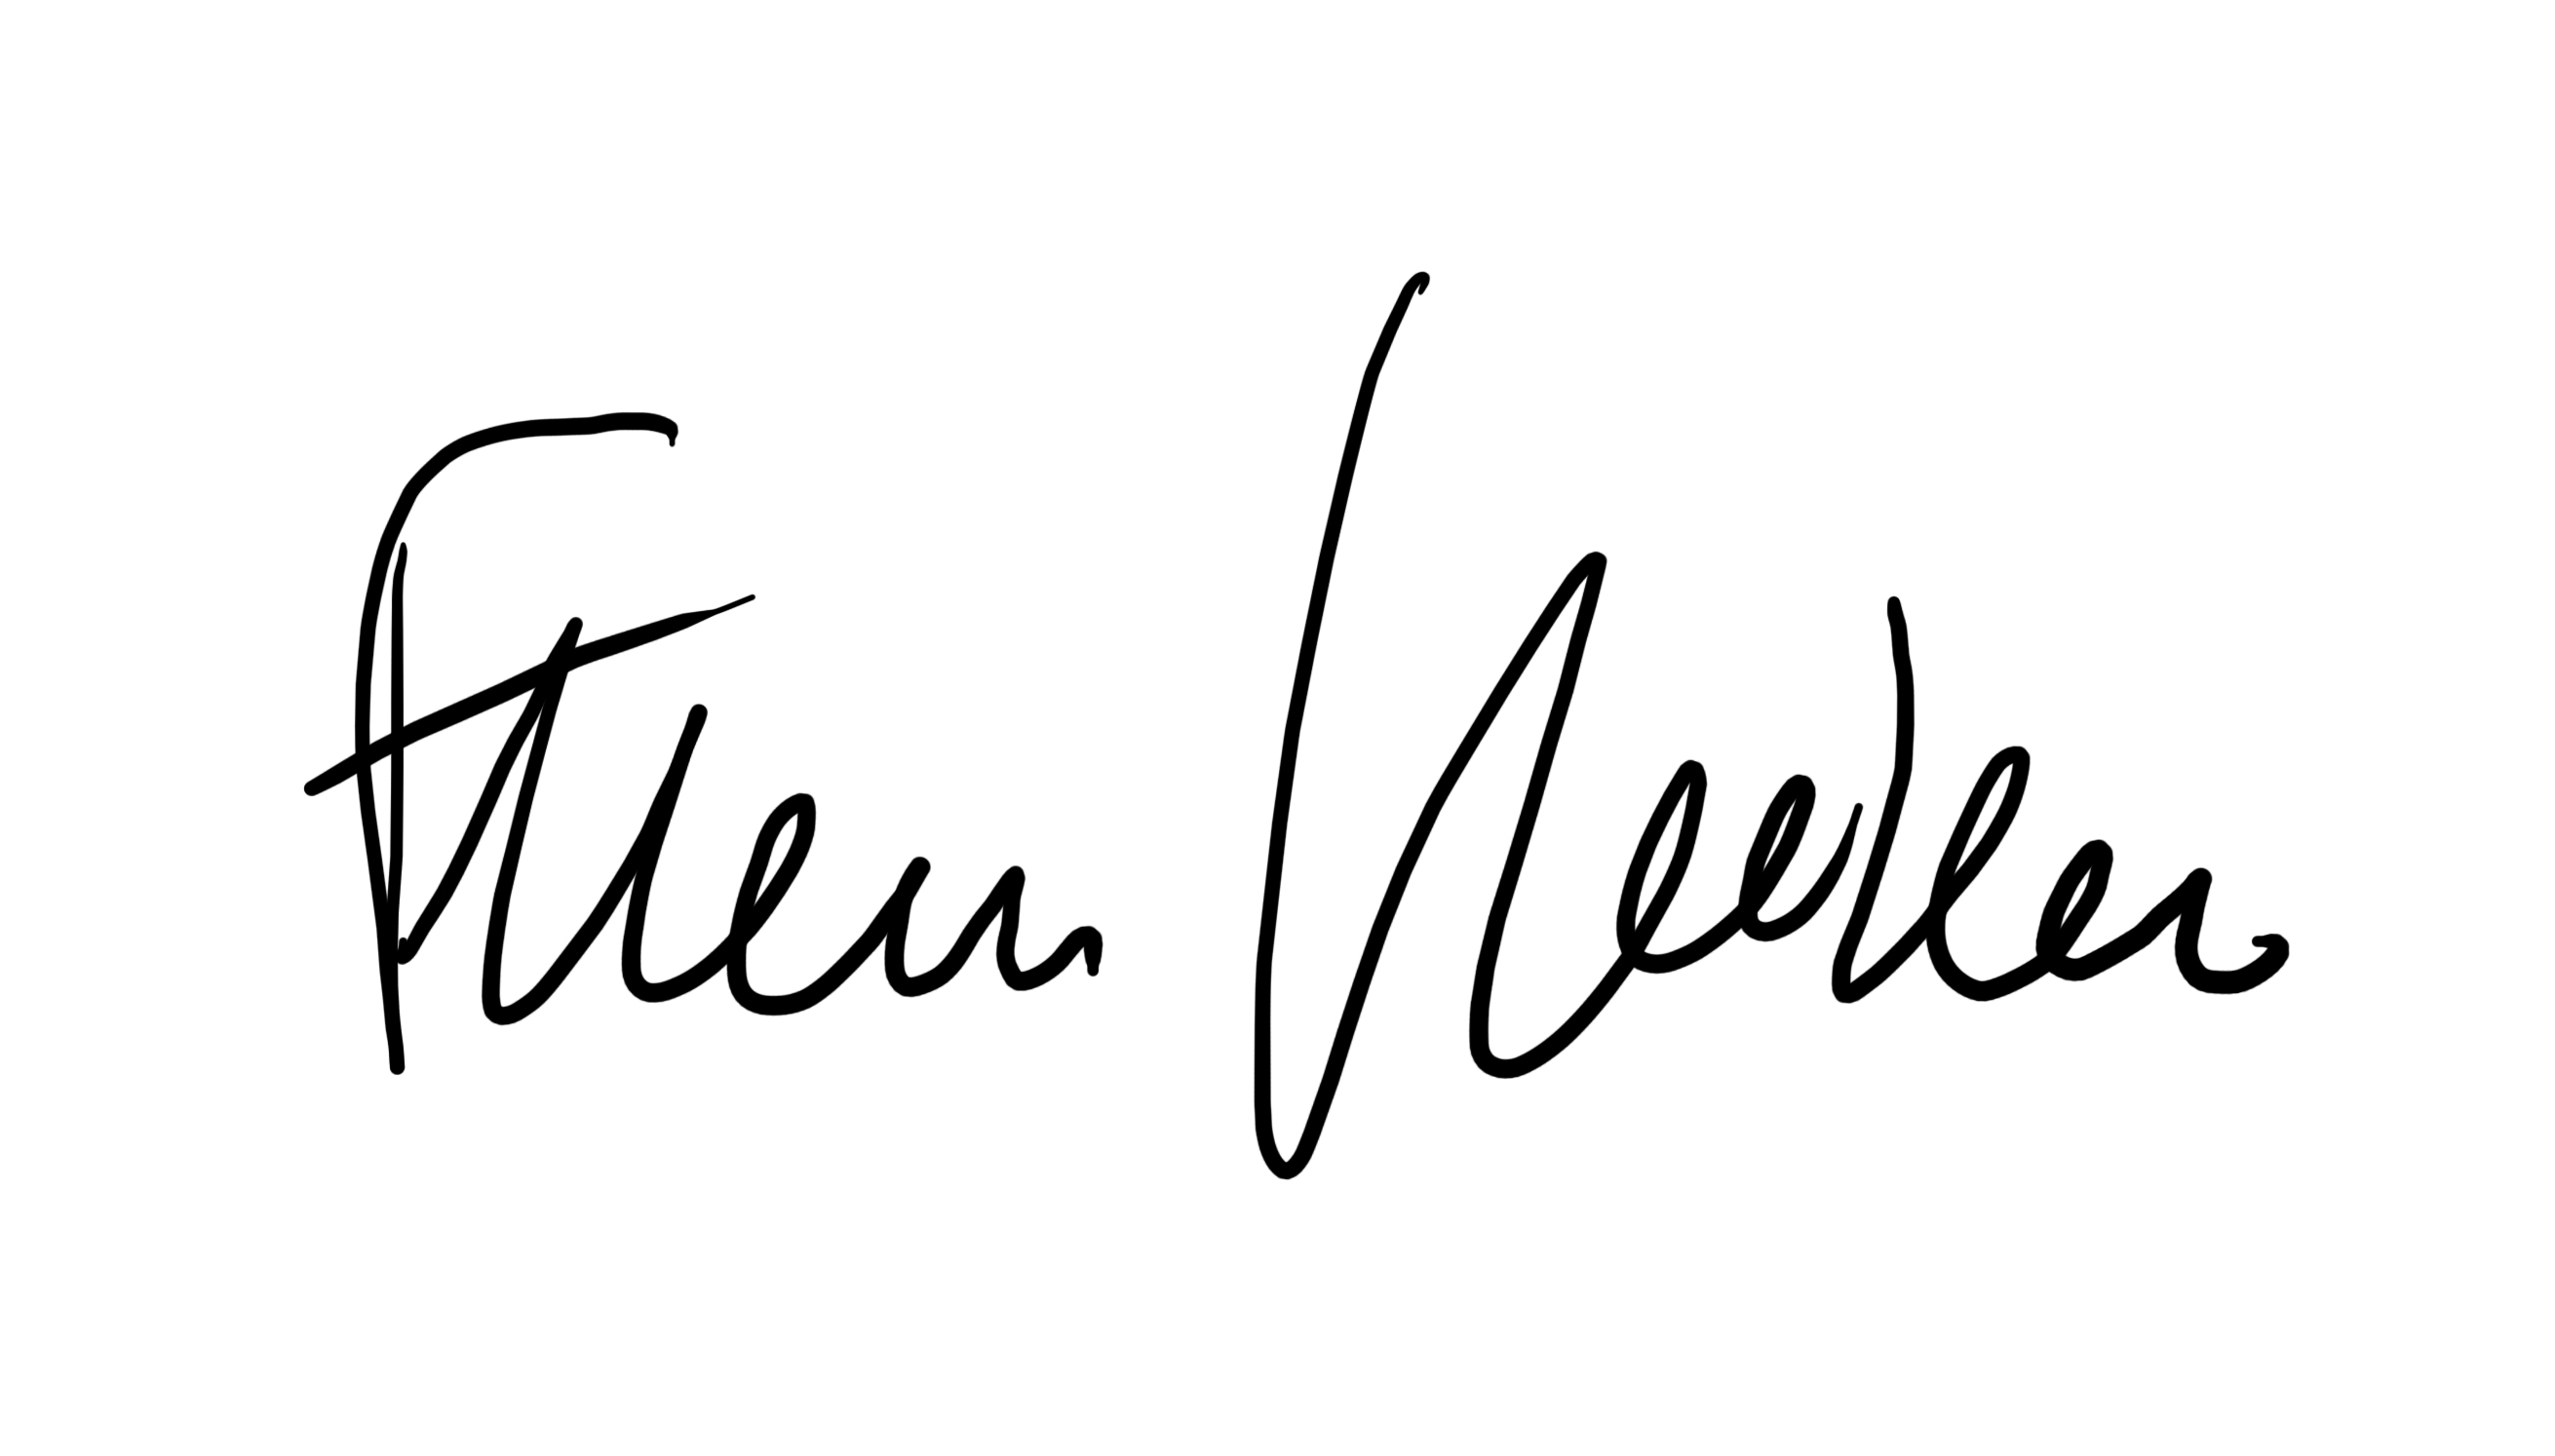 Francesco Venier Signature